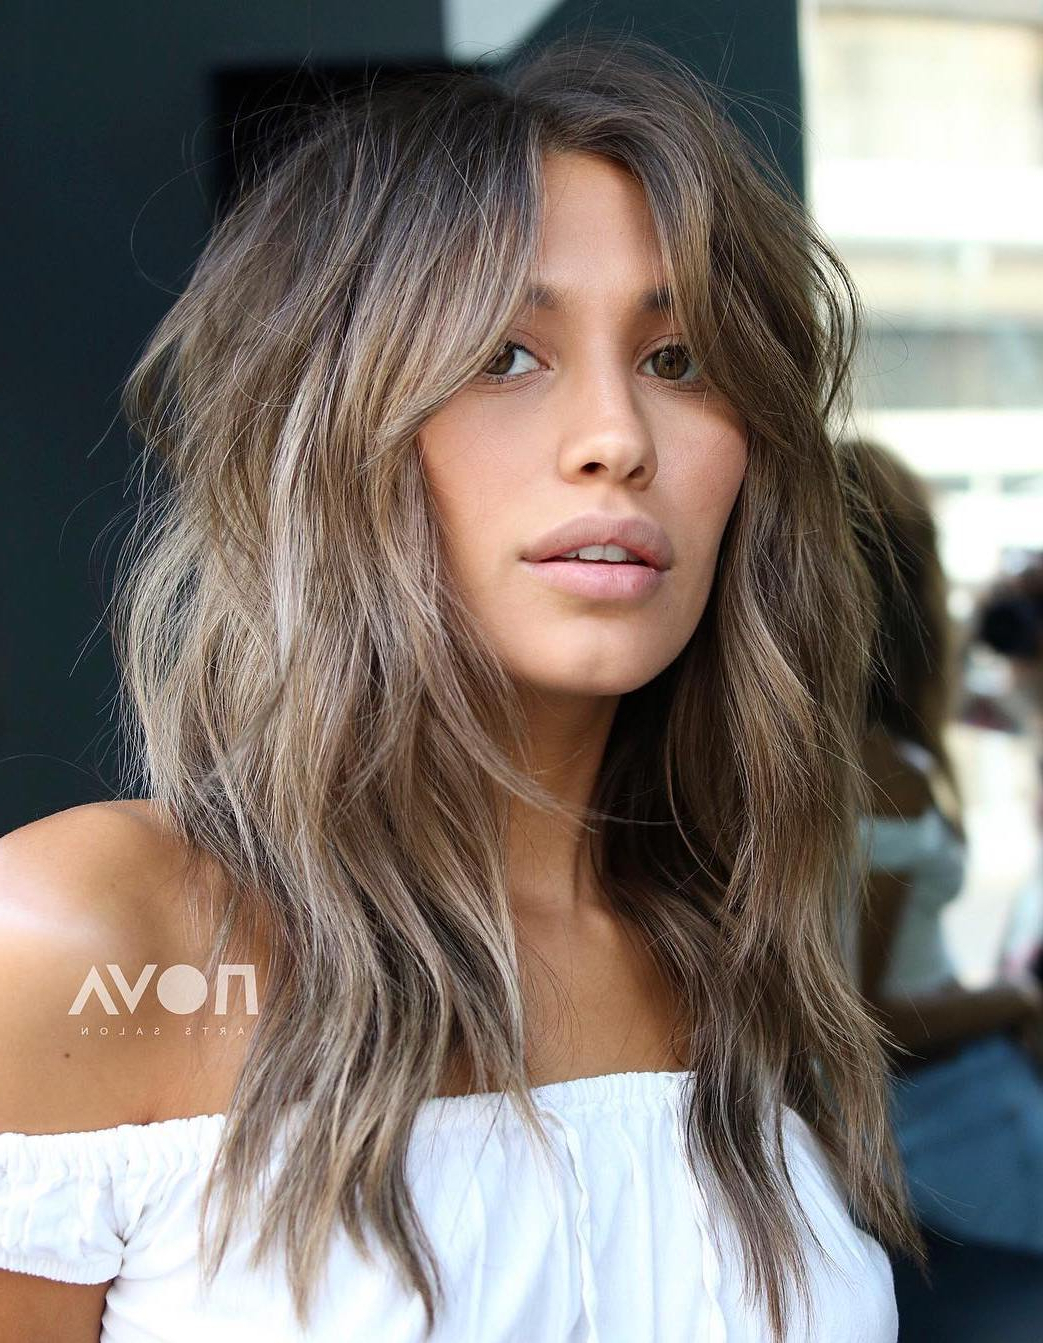 Widely Used Shorter Shag Haircuts With Razored Layers Regarding 40 Modern Shag Haircuts For Women To Make A Splash (View 12 of 20)